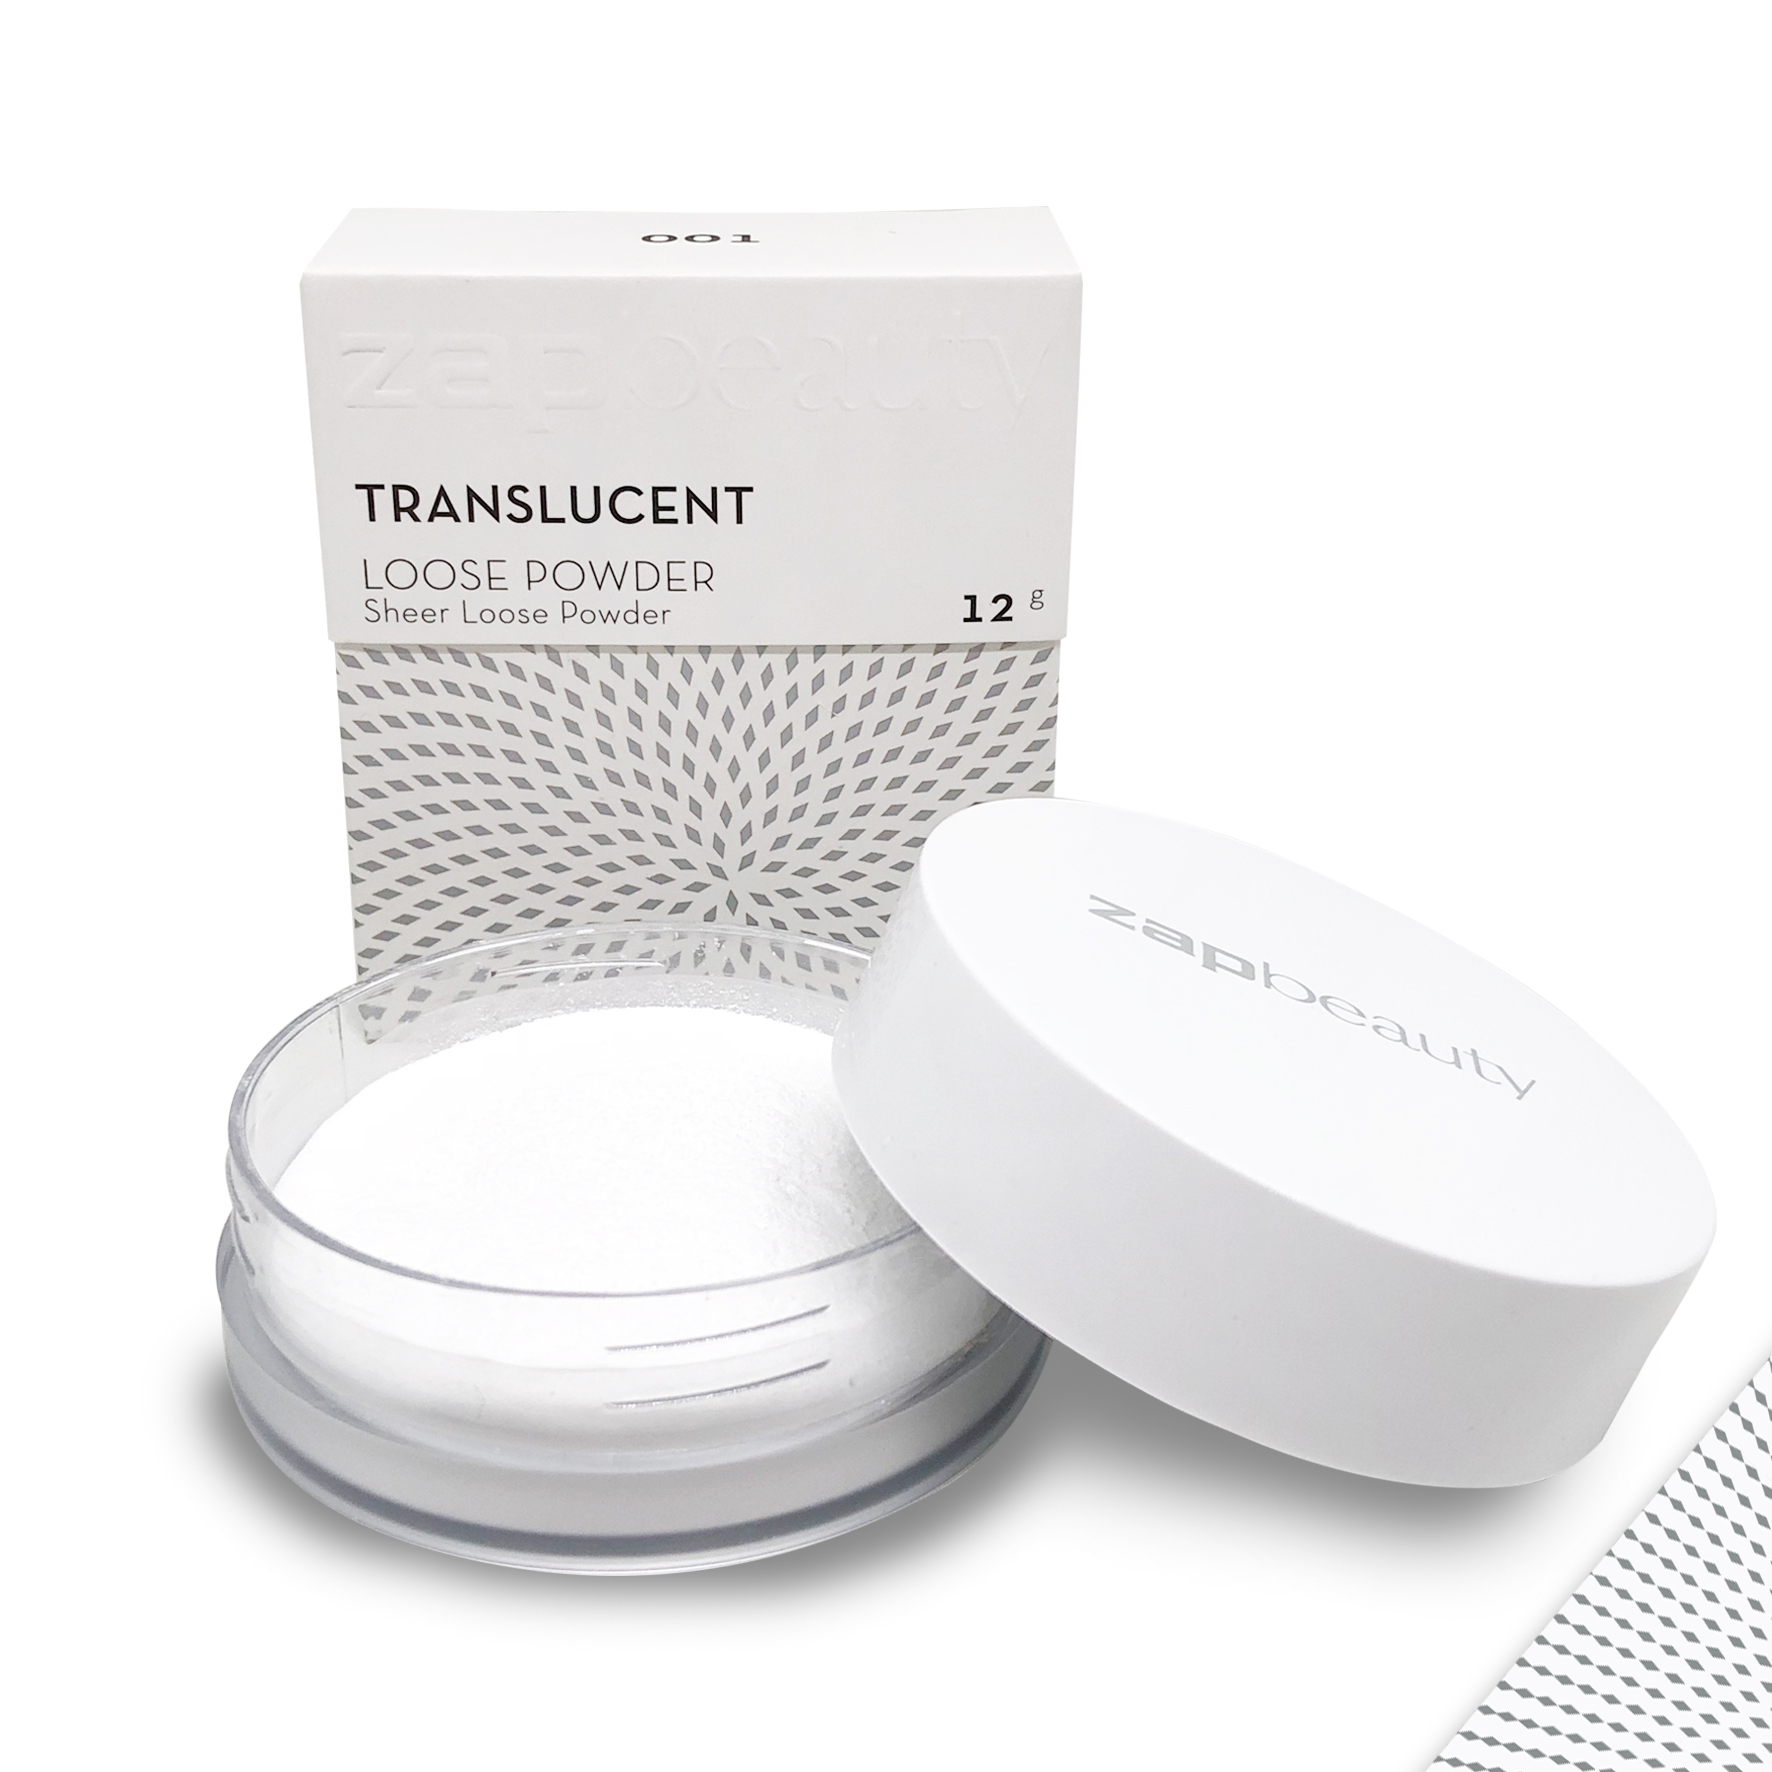 001 Translucent - Sheer Loose Powder